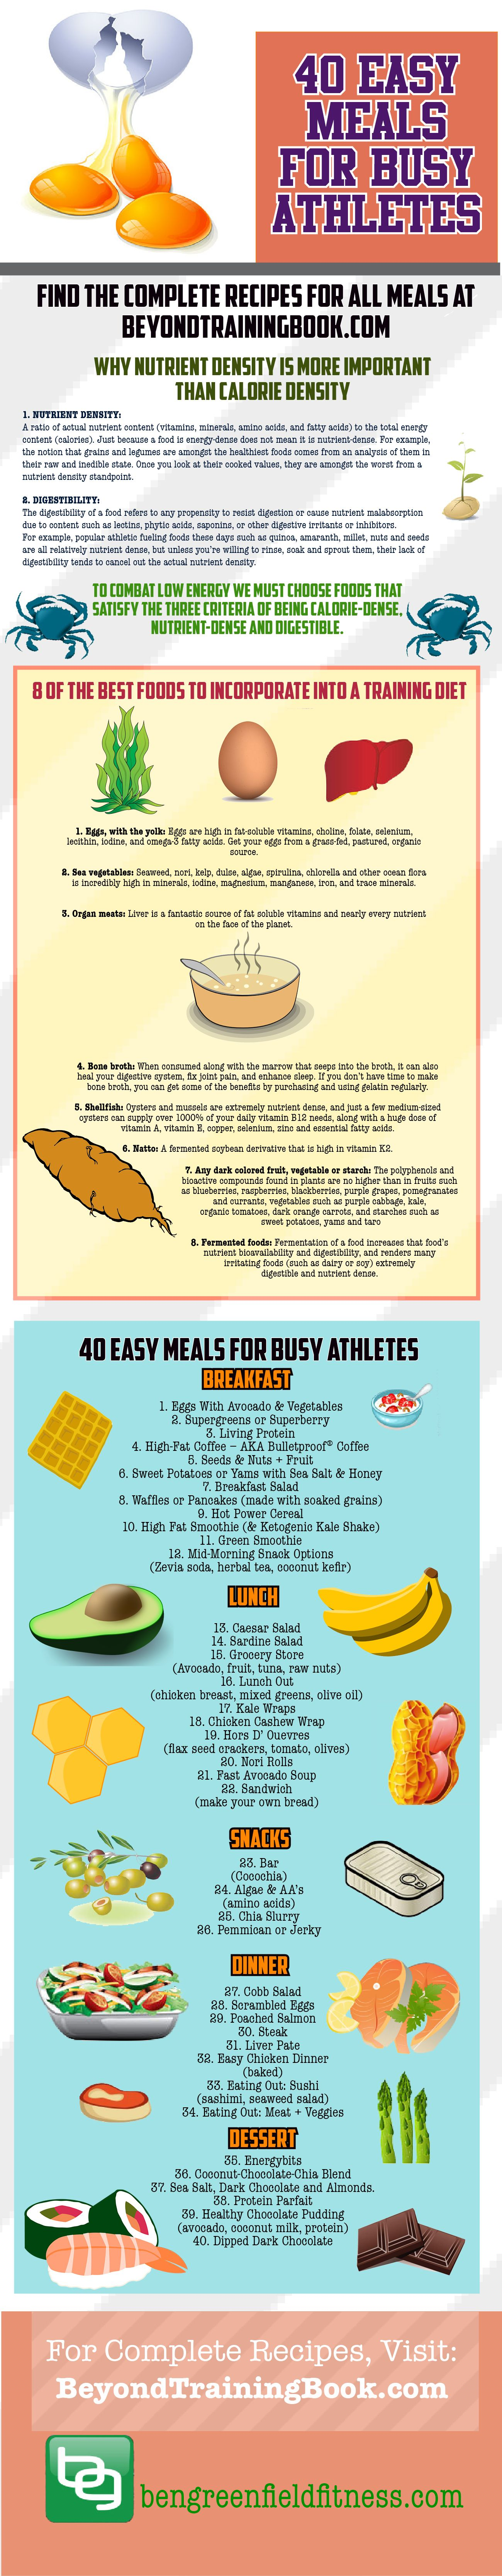 Eat like an athlete recipes